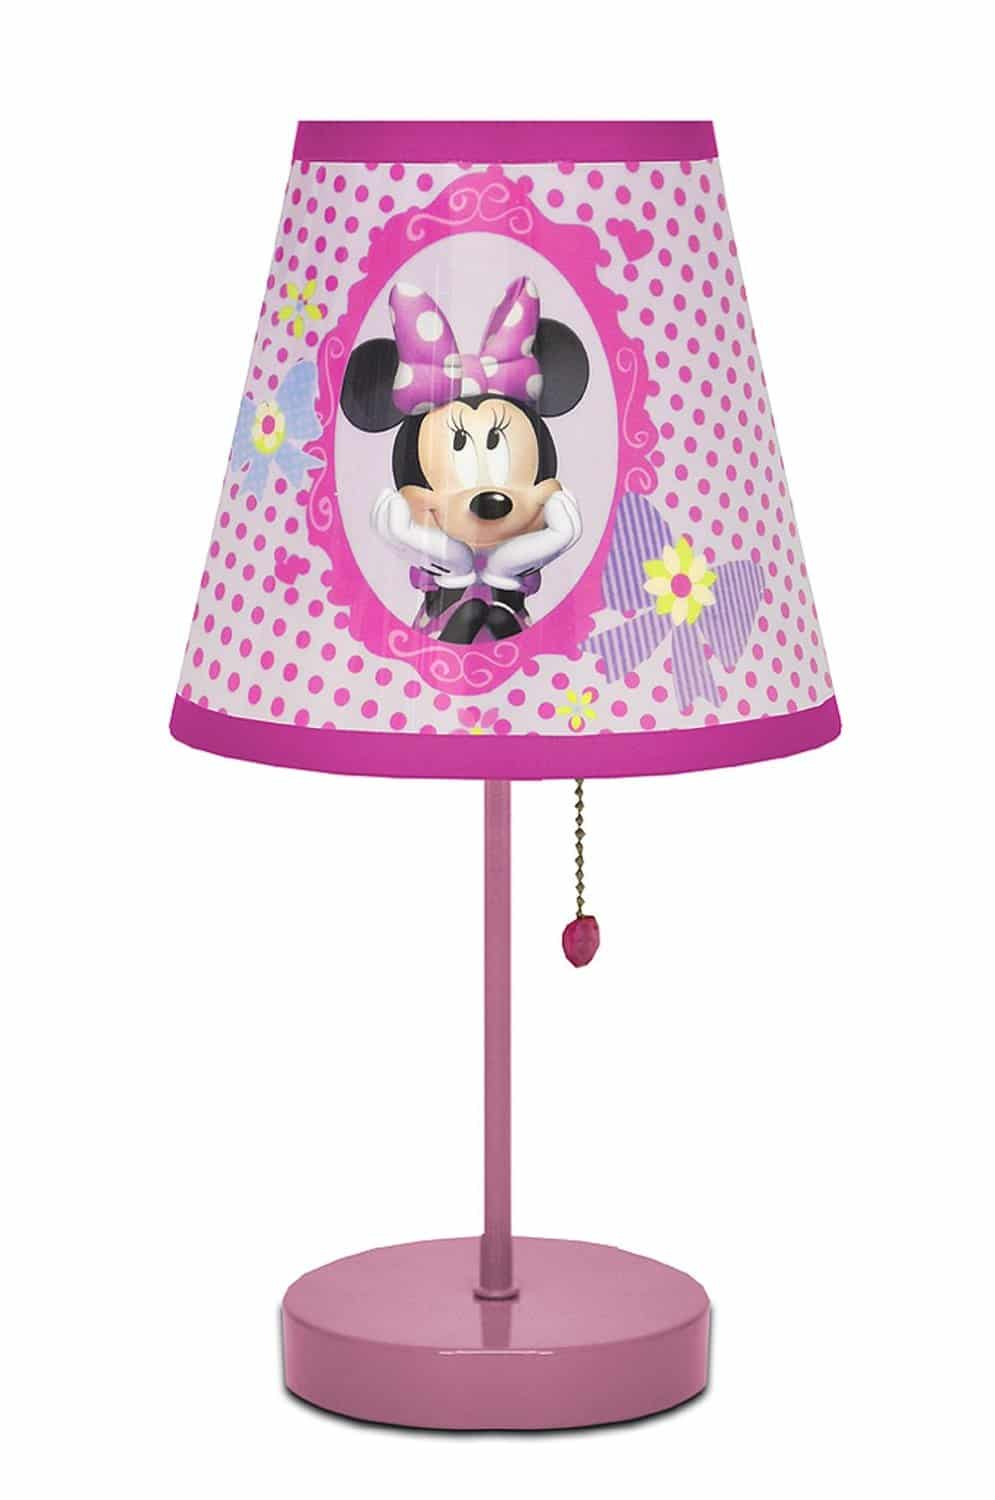 pink bedroom lamps pink decor for a bedroom that you can buy 12843